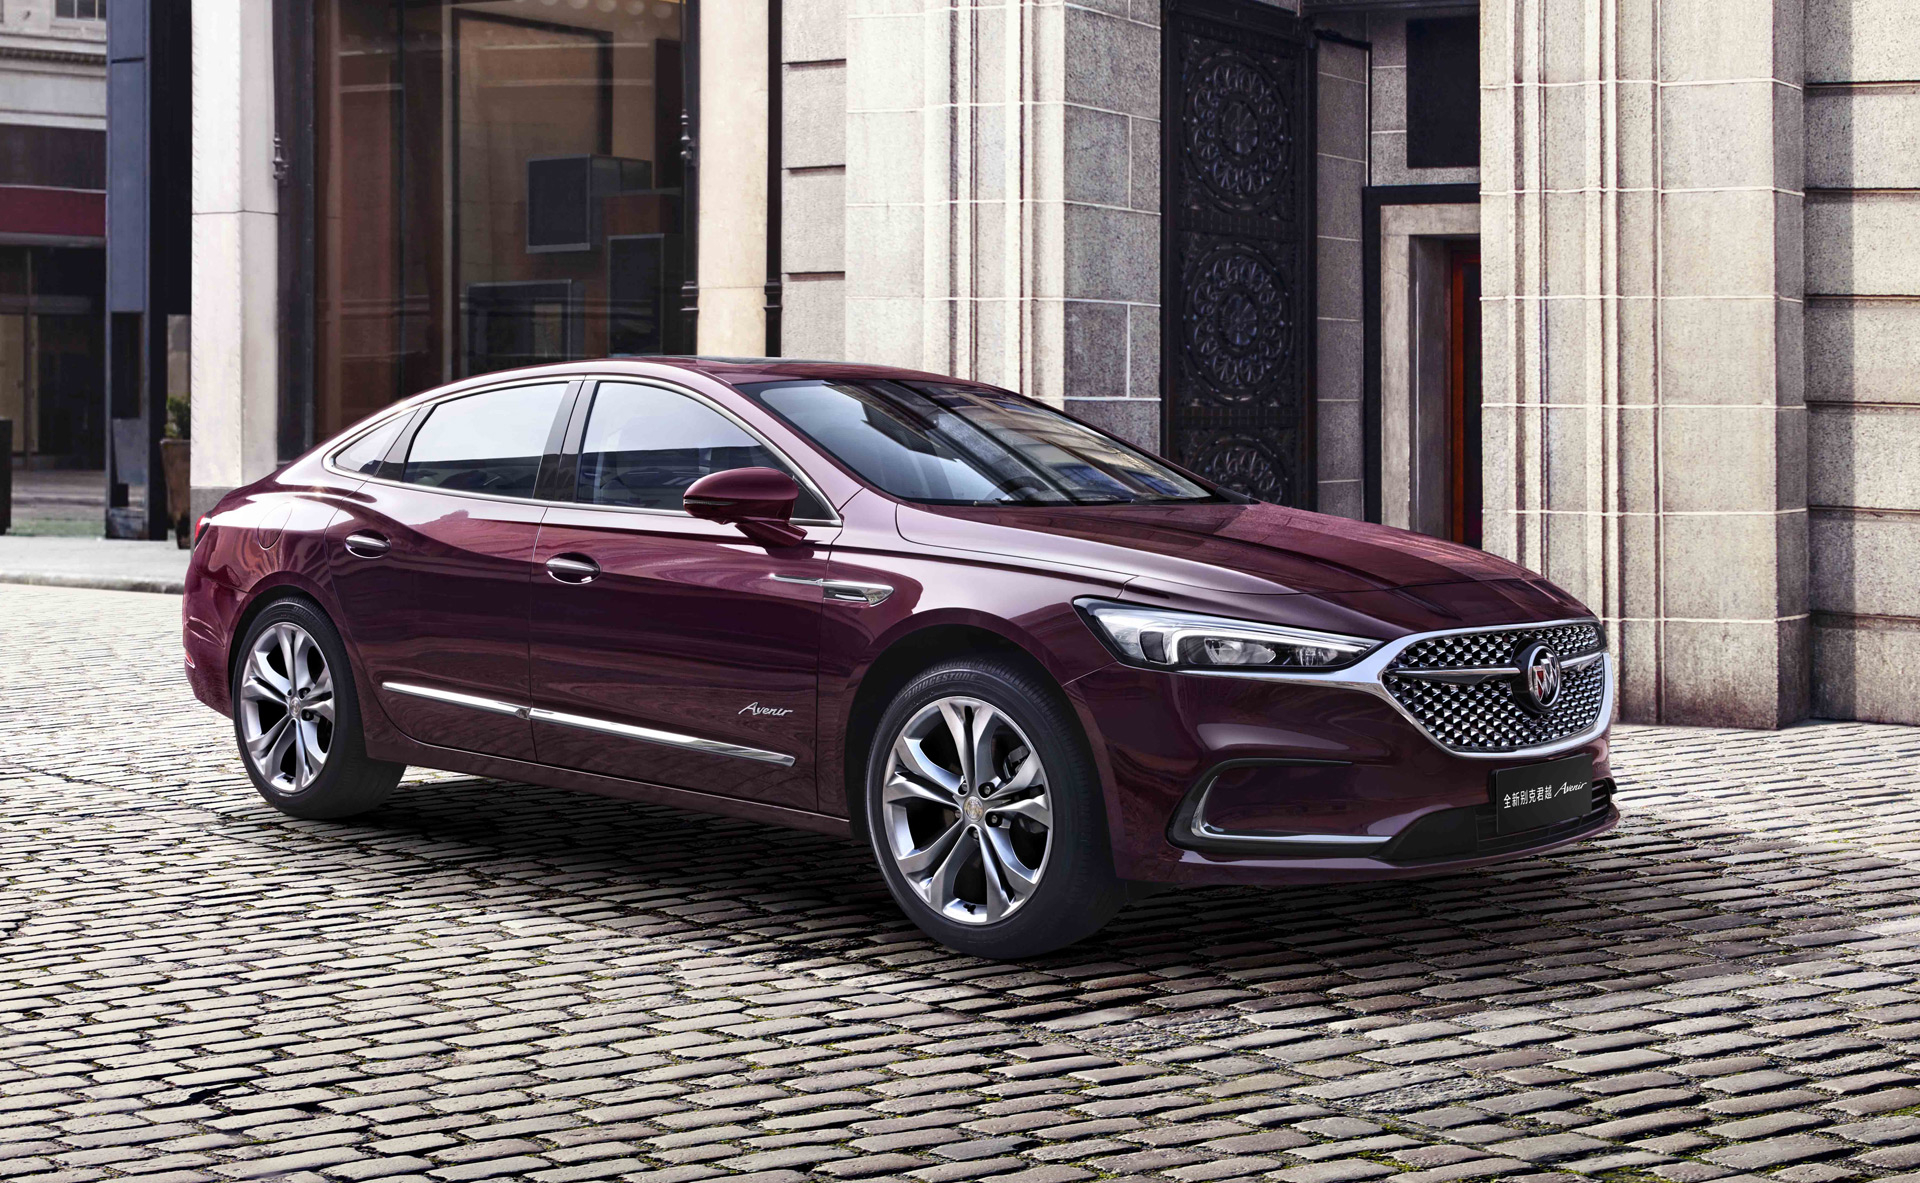 2020 Buick Lacrosse Made Handsome Just As It's Dropped In Us 2021 Buick Lacrosse Cost, Awd, Build And Price